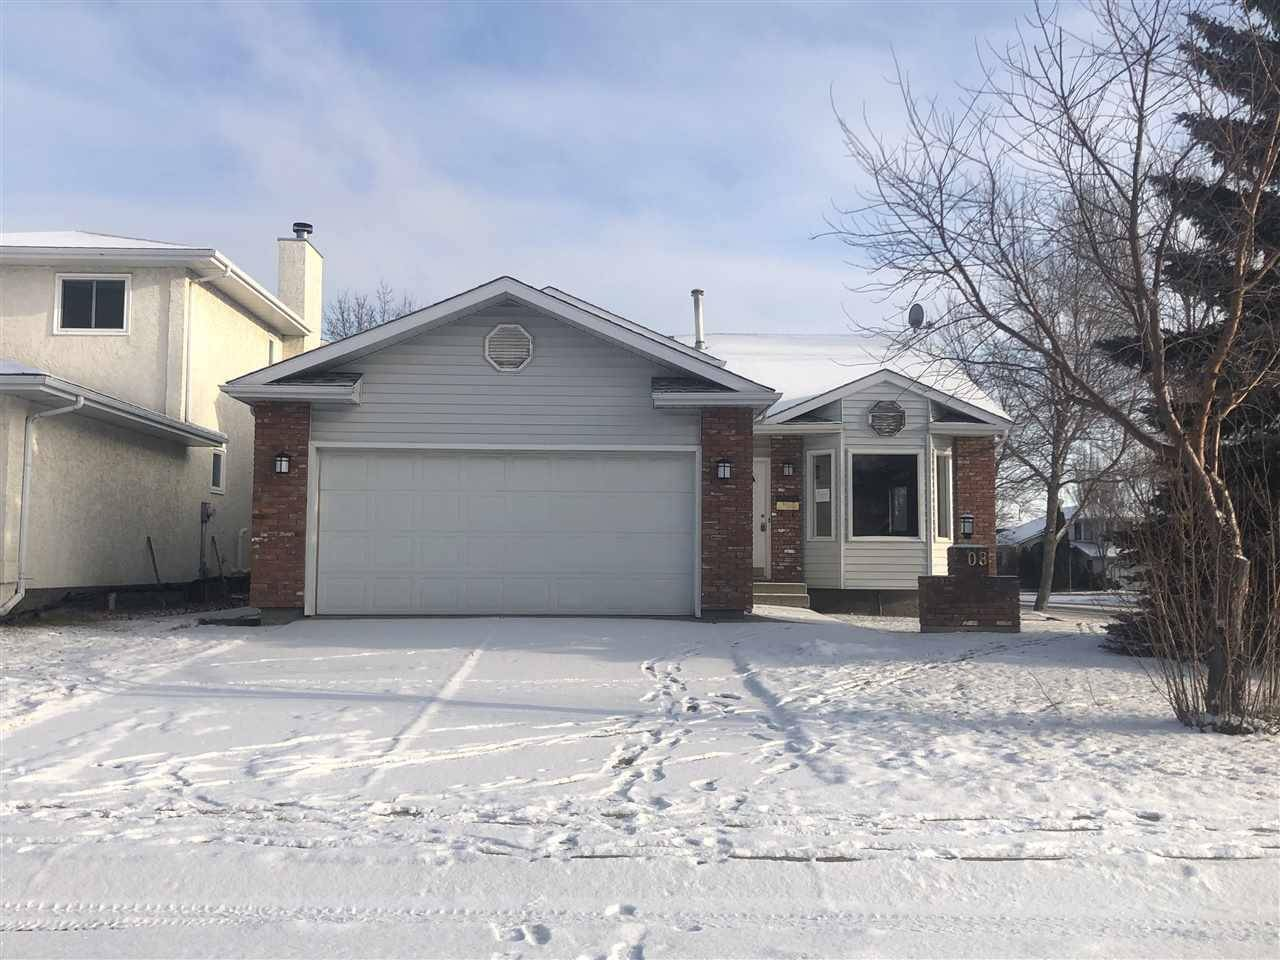 House for sale at 408 Ormsby Rd Nw Edmonton Alberta - MLS: E4178348